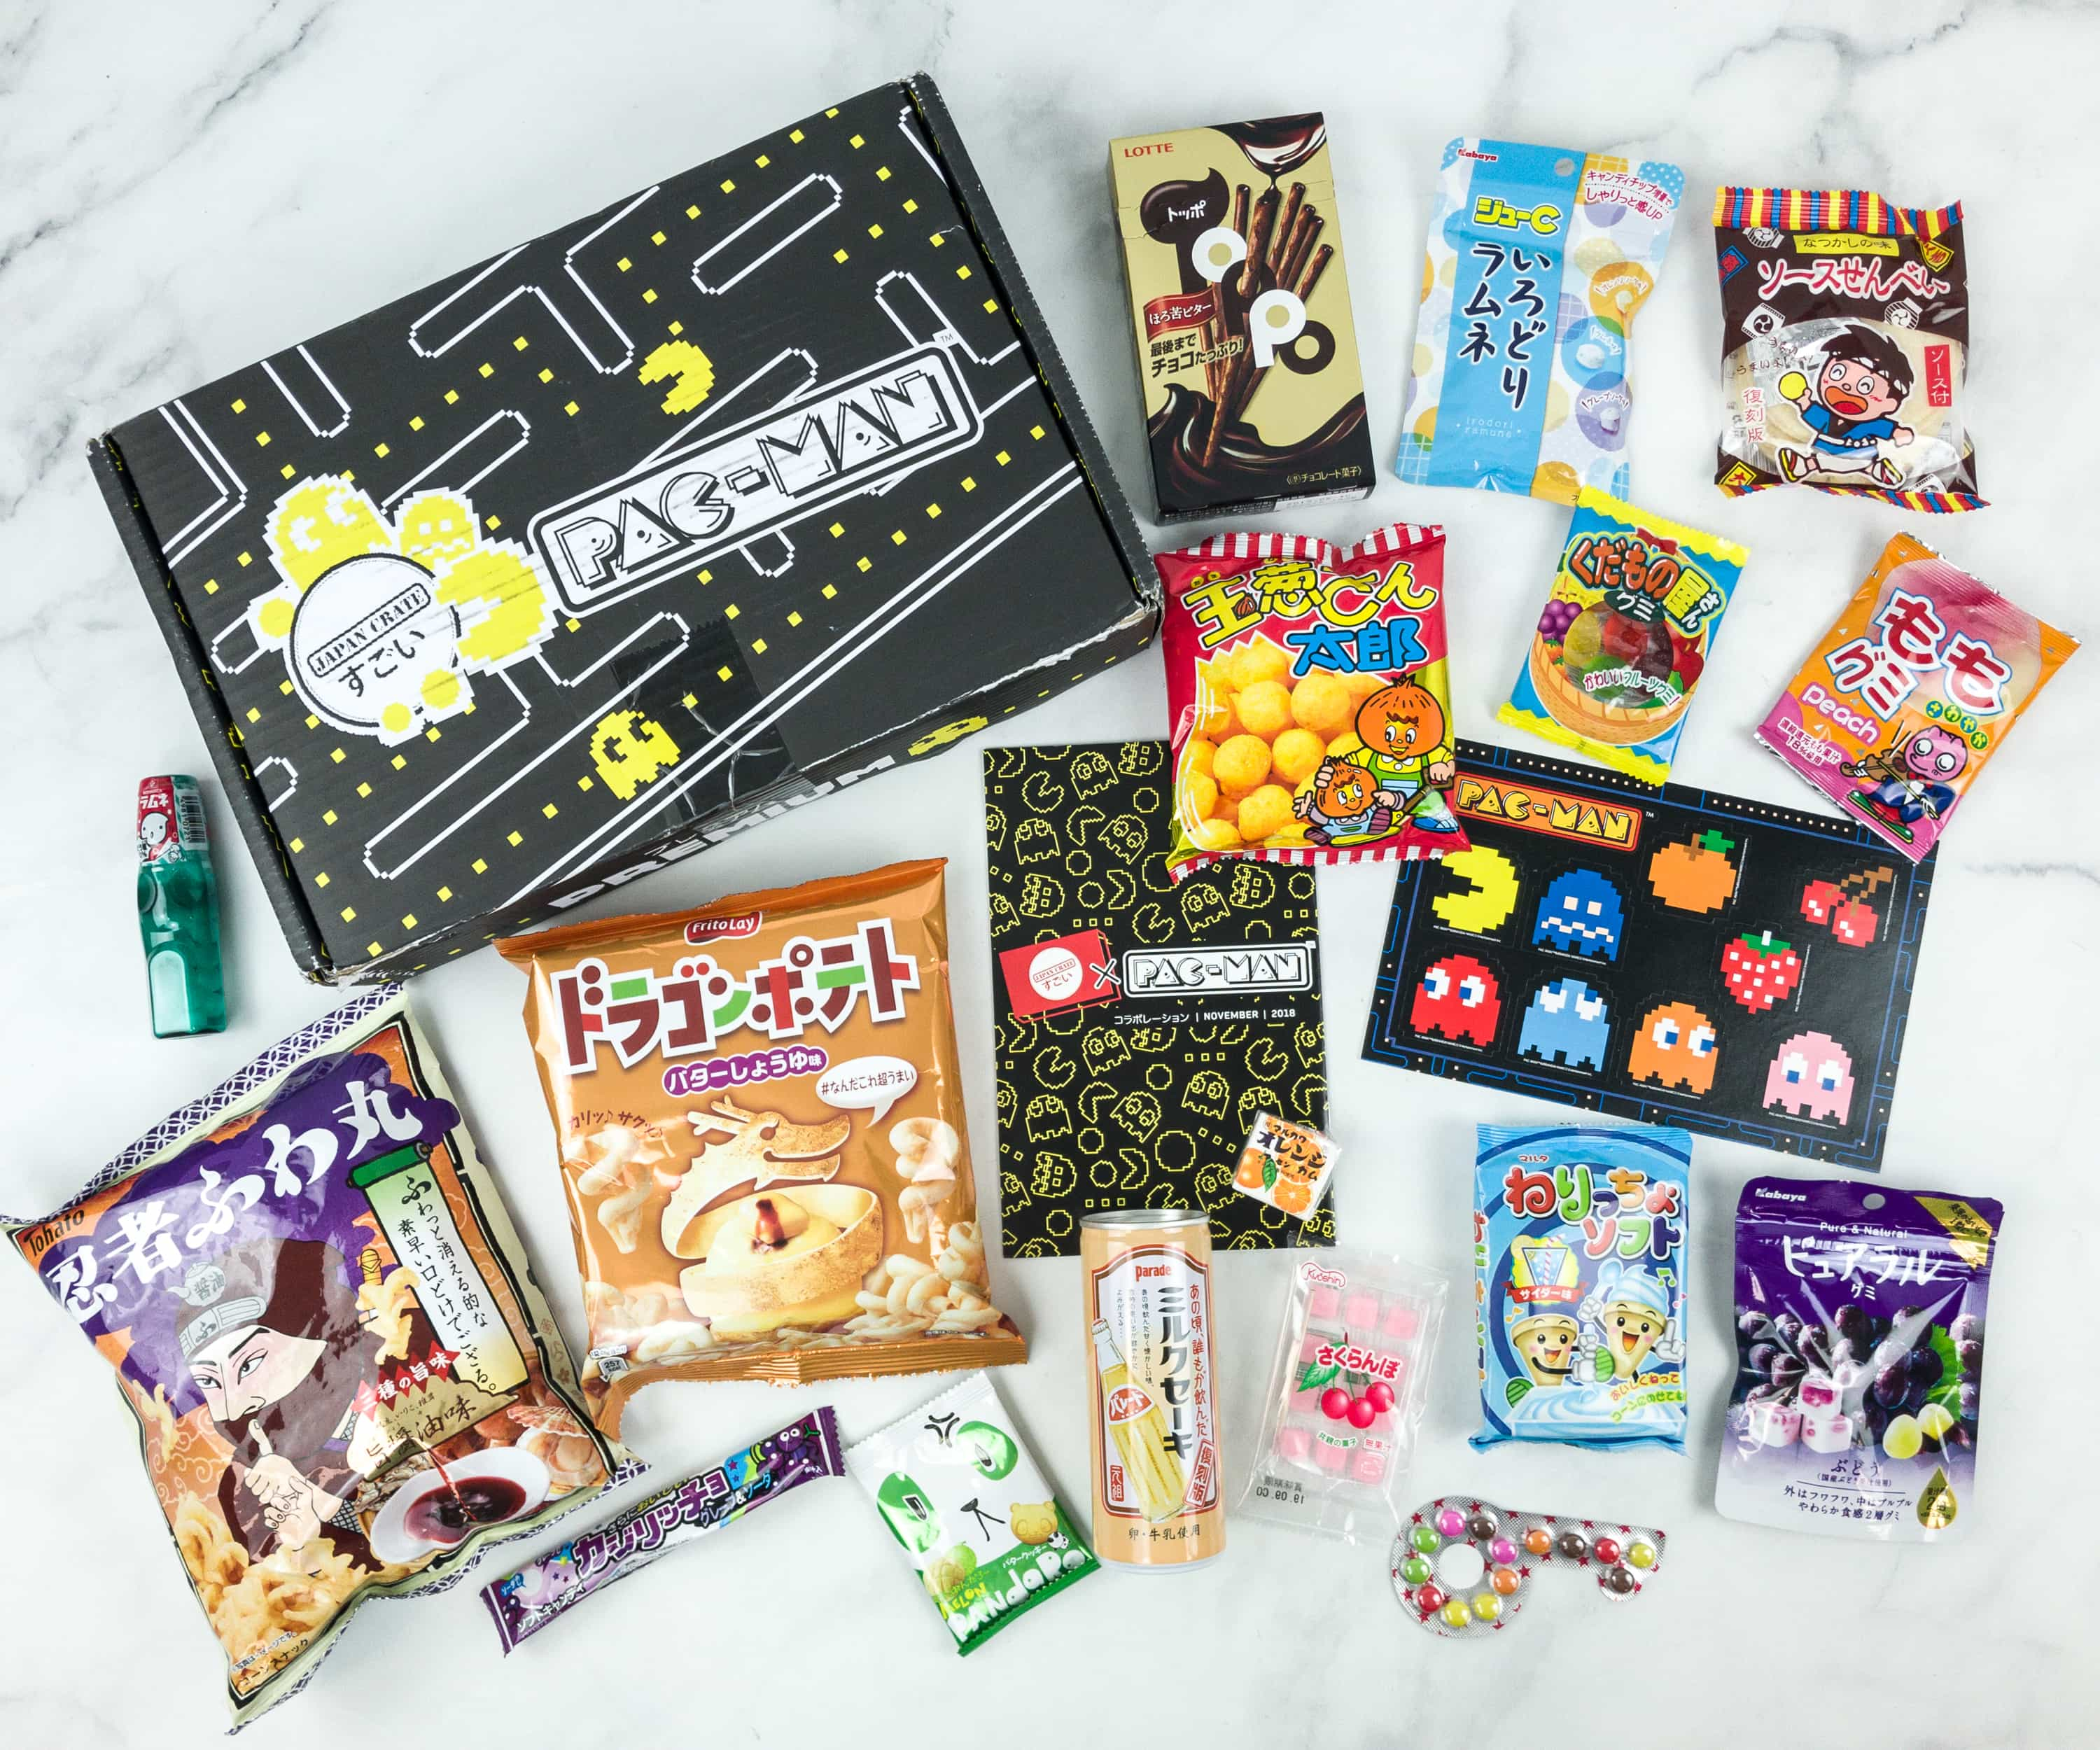 Japan Crate November 2018 Subscription Box Review + Coupon